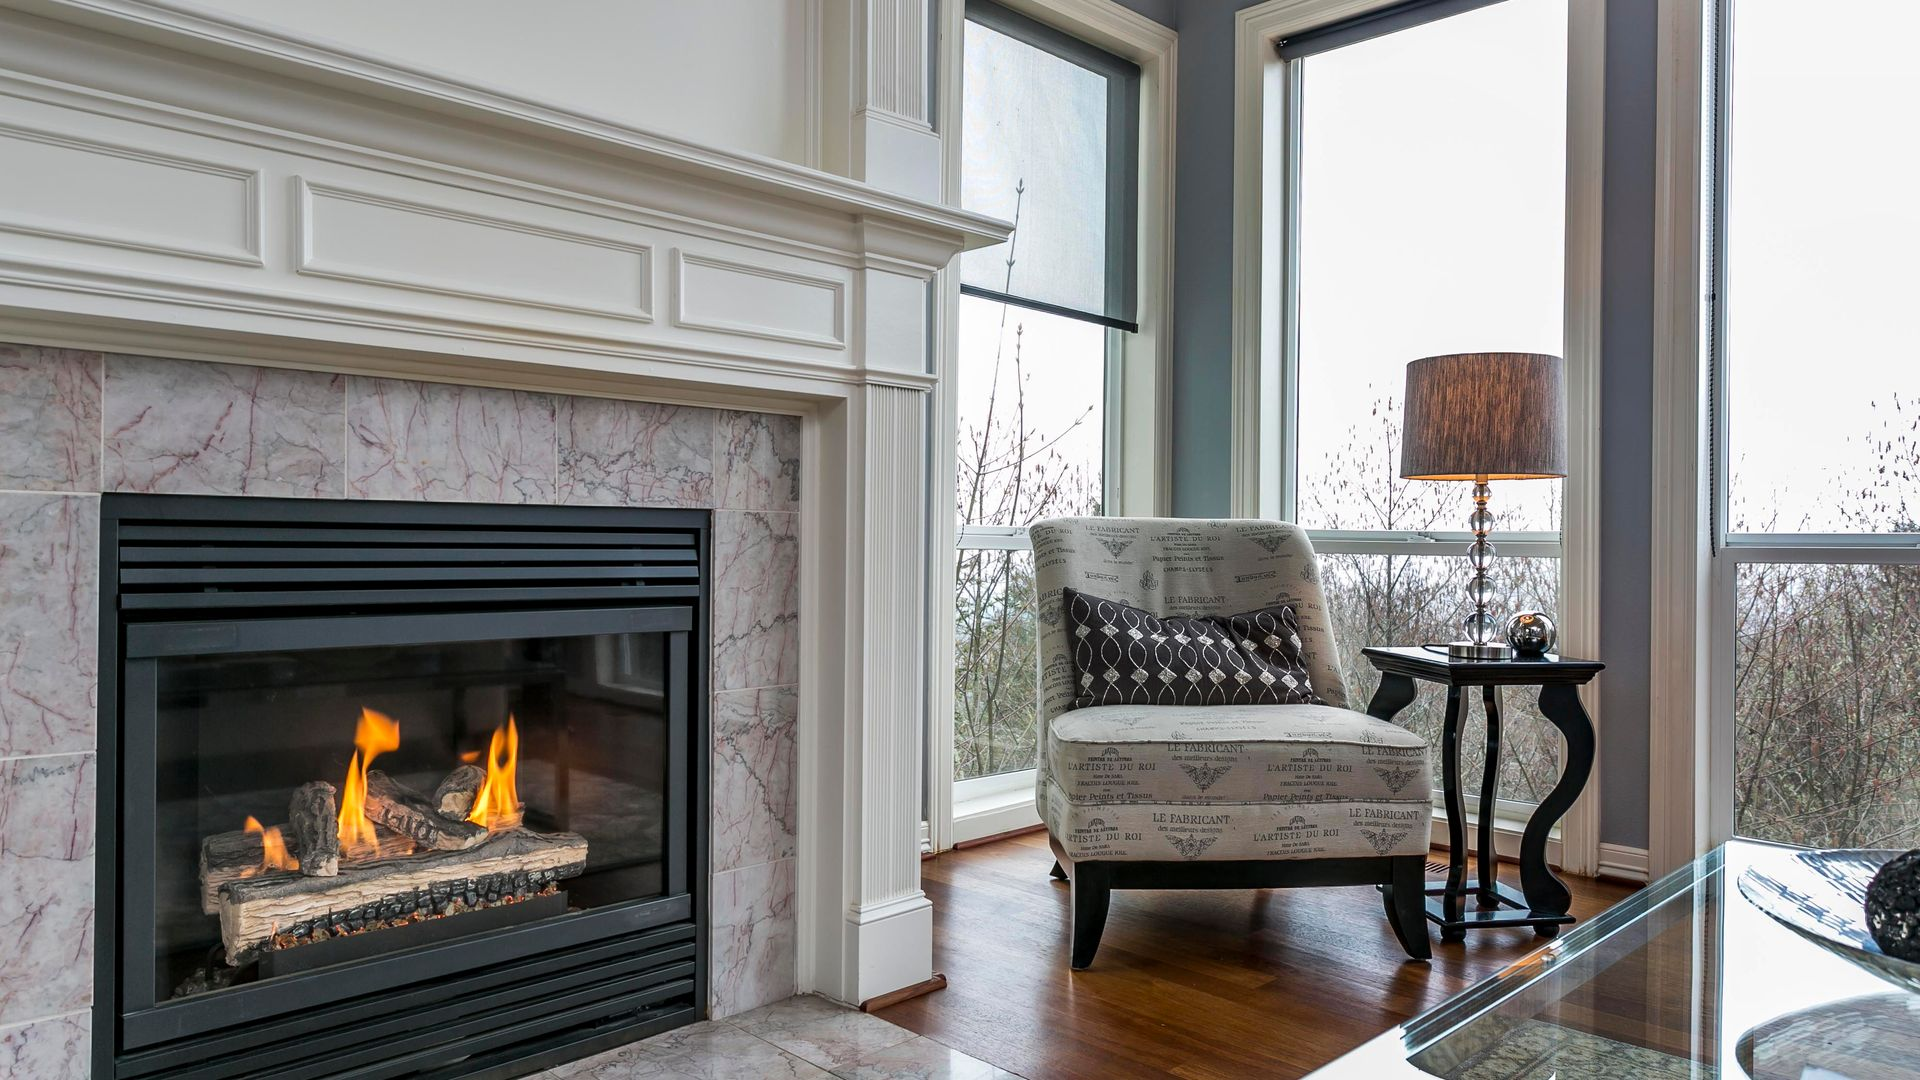 How To Choose A Fireplace Home Improvement Projects